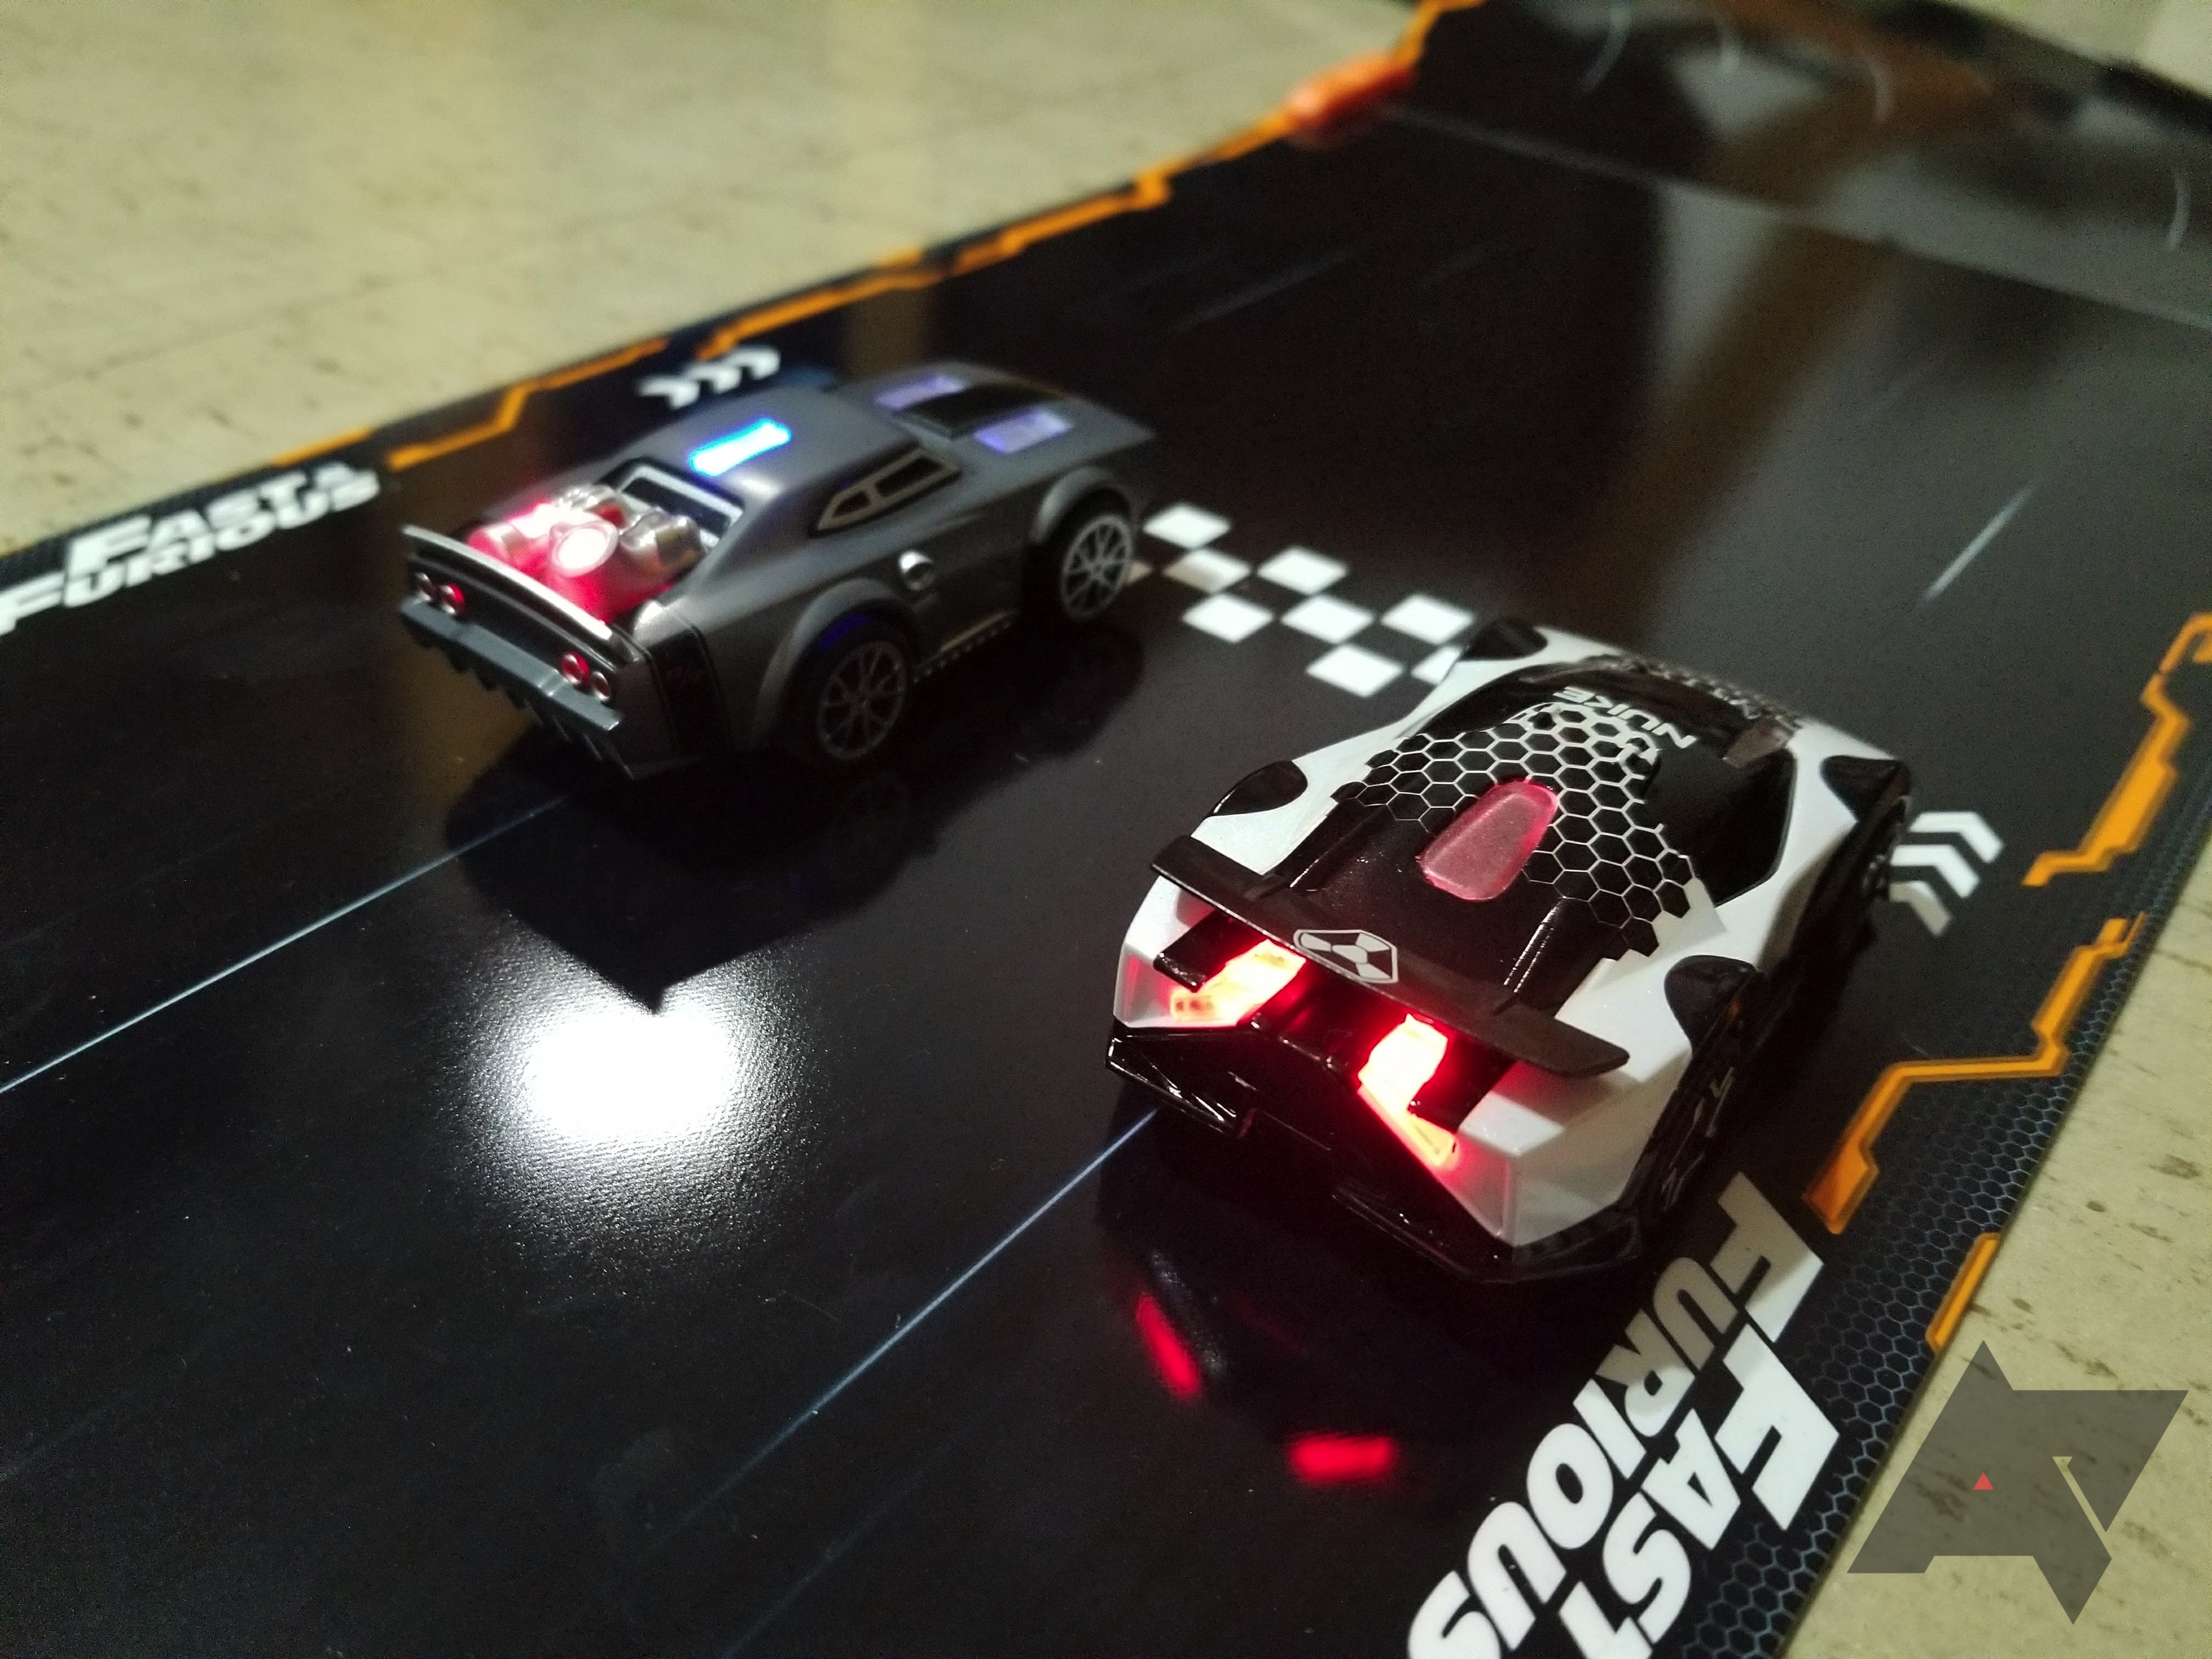 Anki Overdrive Fast Furious Edition Review Just As Good As The Original But With 100 More Vin Diesel